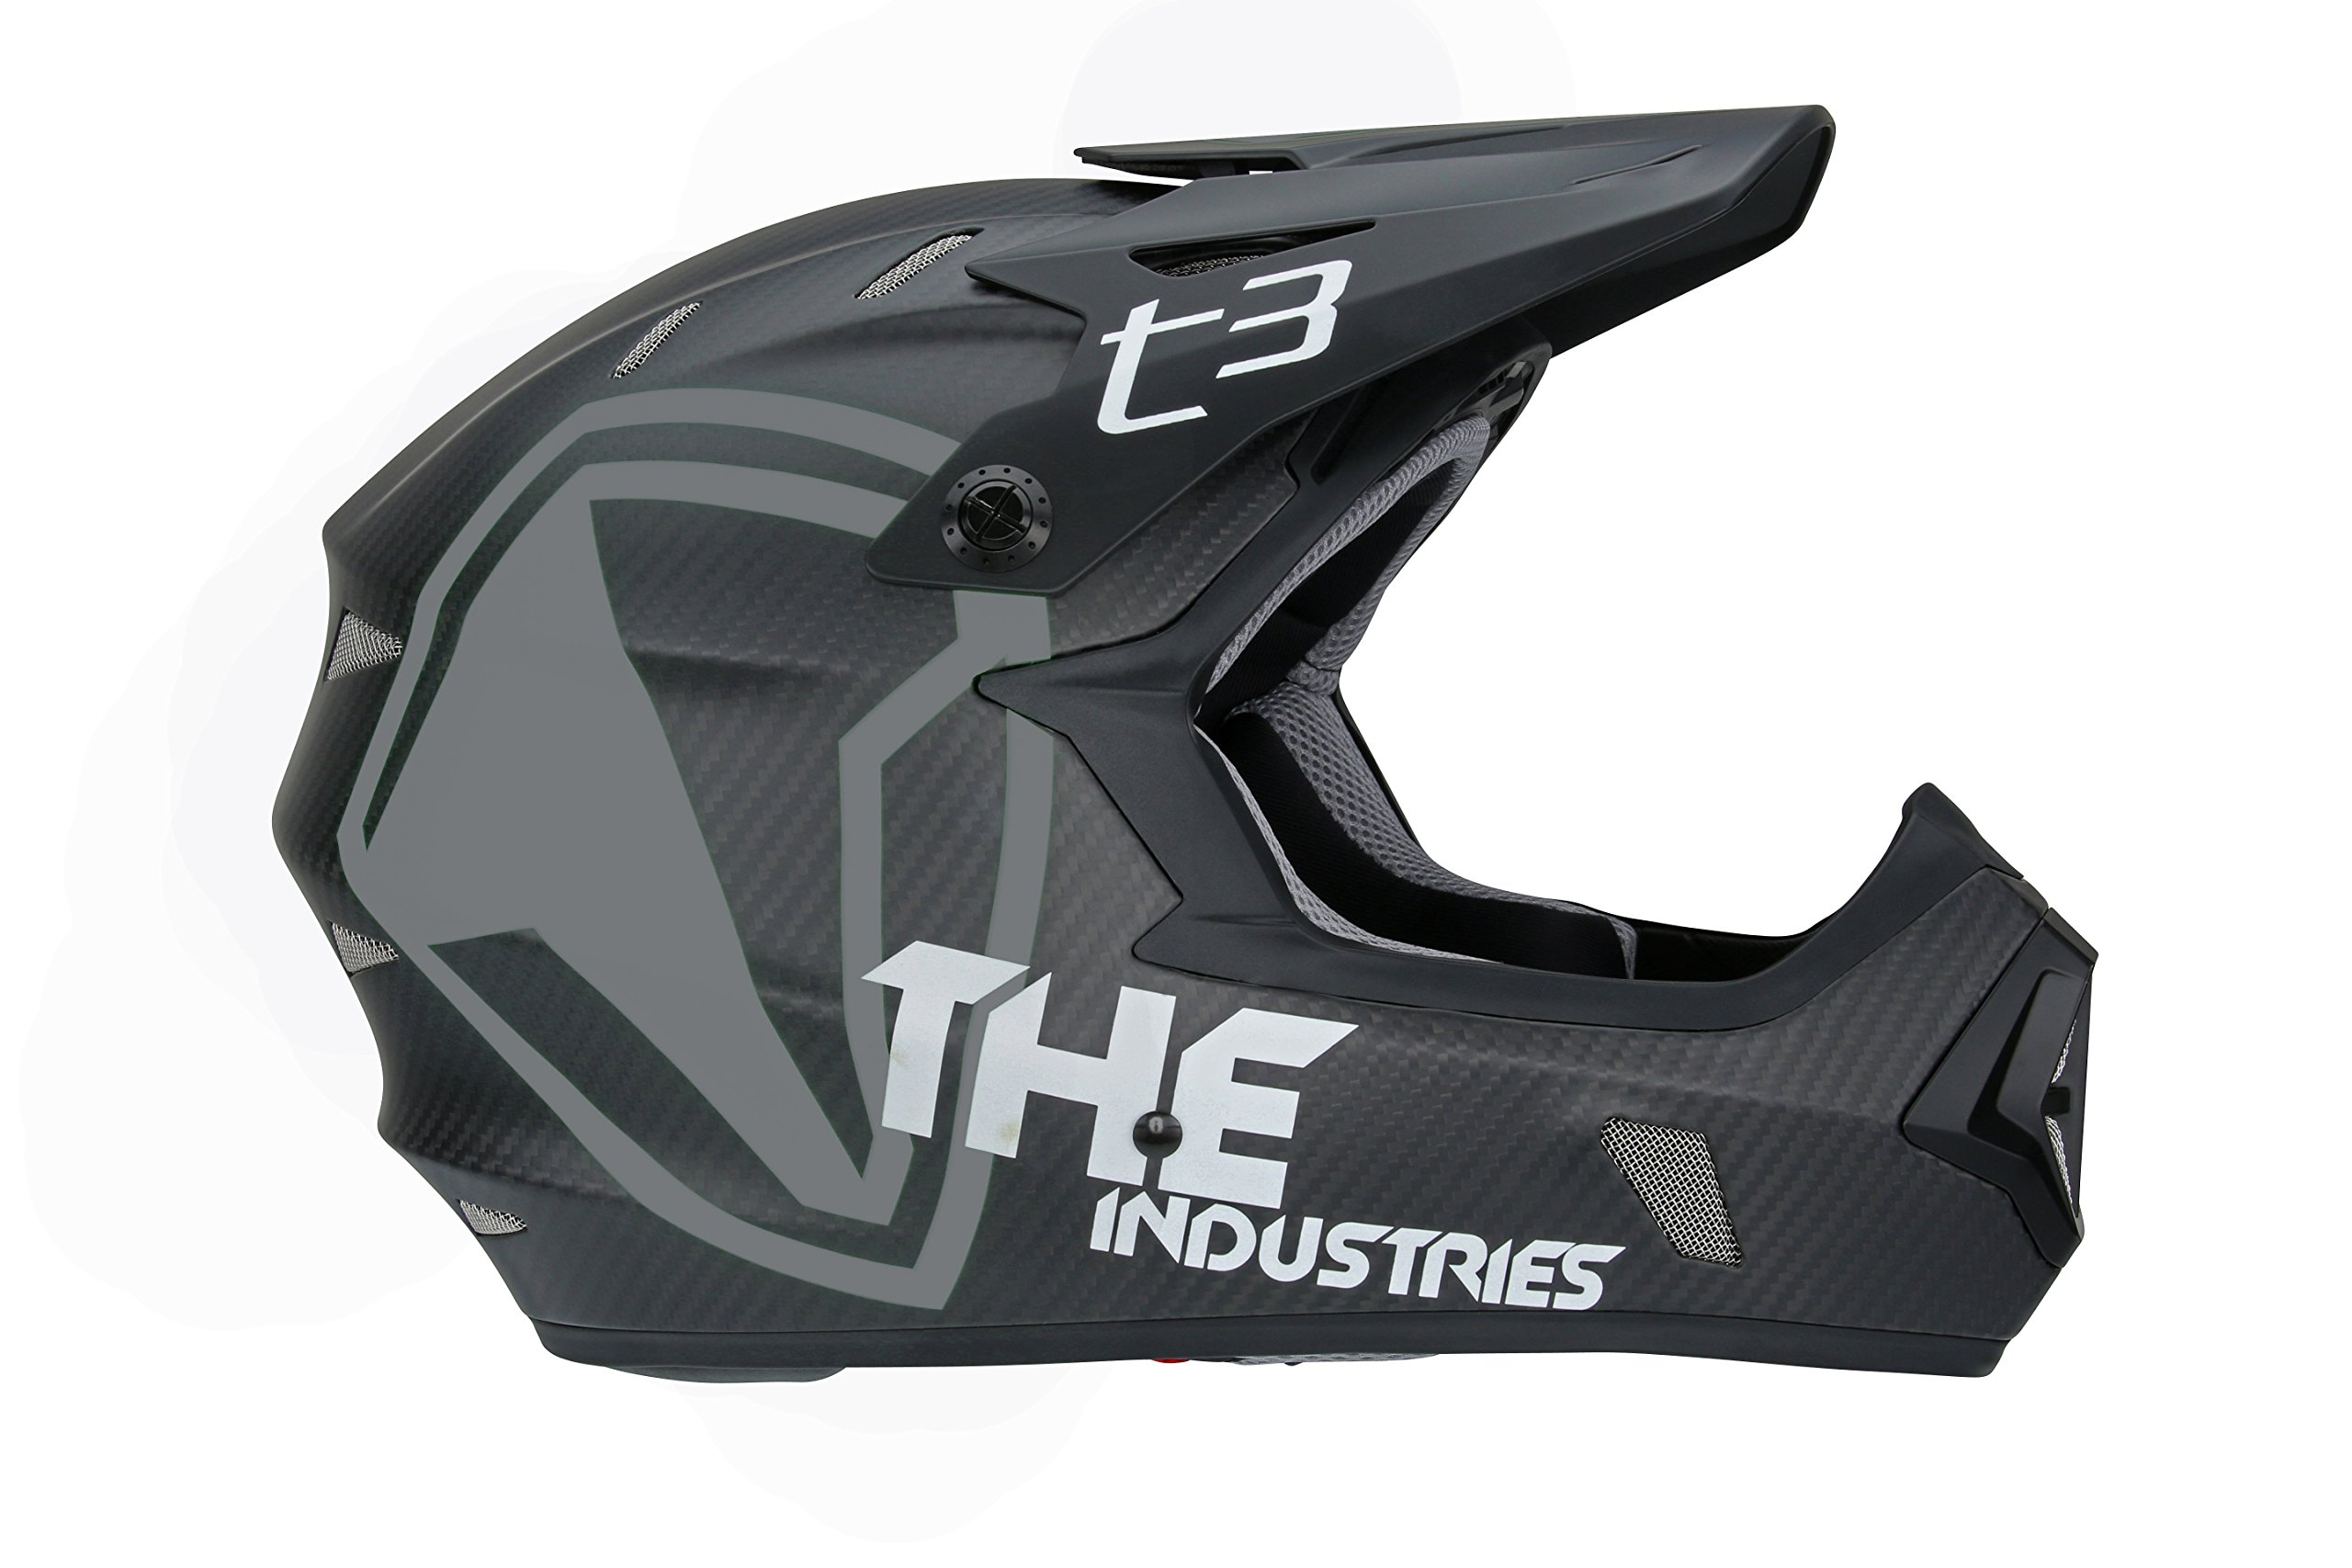 THE Industries Youth T3 Carbon Shield BMX and Mountain Bike Helmet, Black/White, 45-46cm/Small by THE Industries